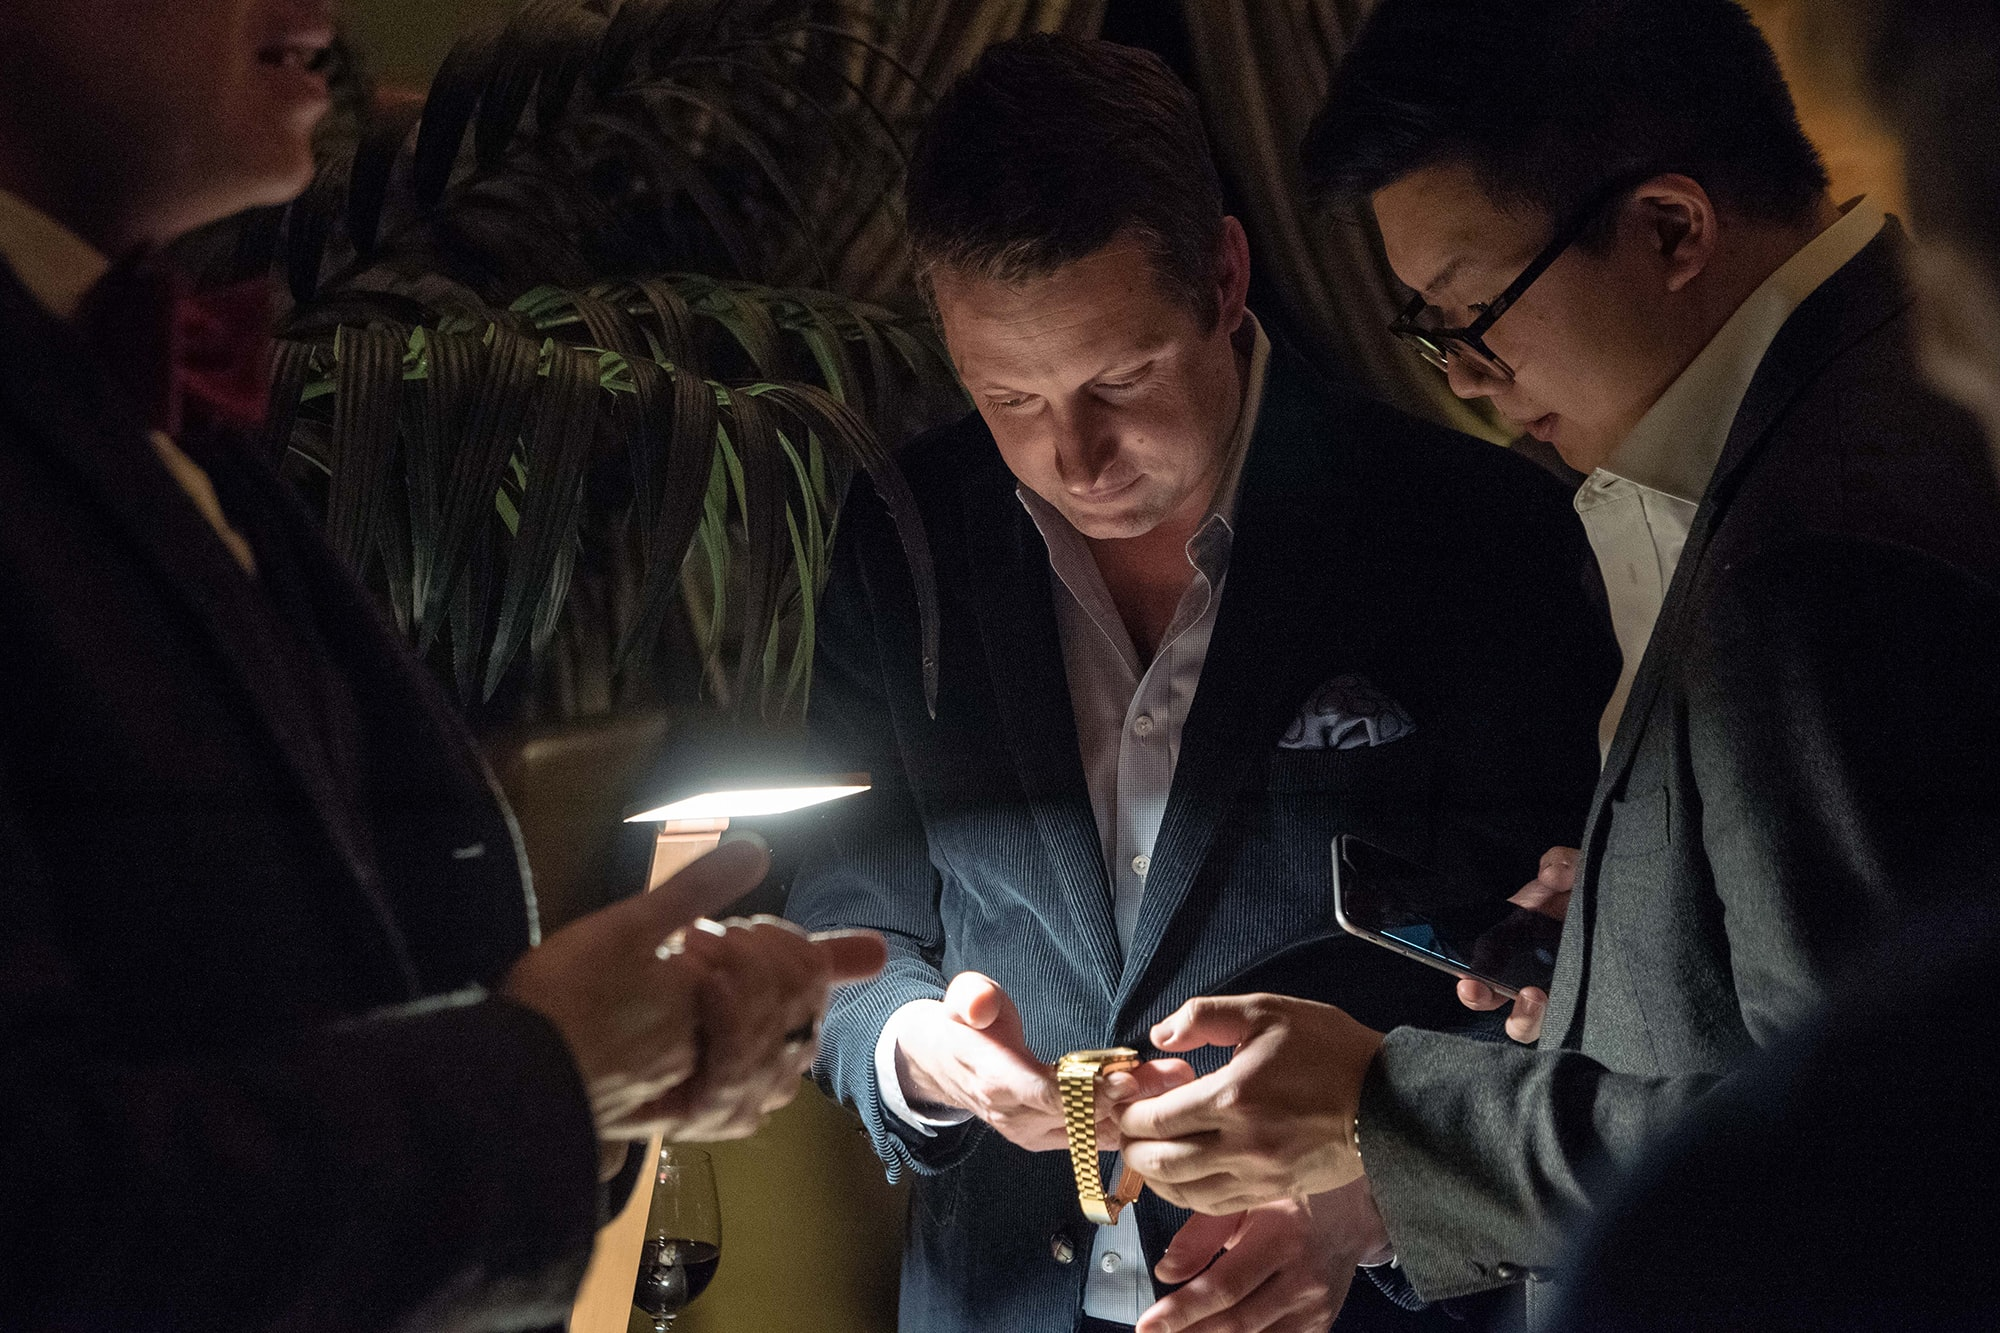 Photo Report: HODINKEE And Omega Celebrate The 60th Anniversary Of The Speedmaster Photo Report: HODINKEE And Omega Celebrate The 60th Anniversary Of The Speedmaster  20170221 OmegaSpeedmaster60th 115